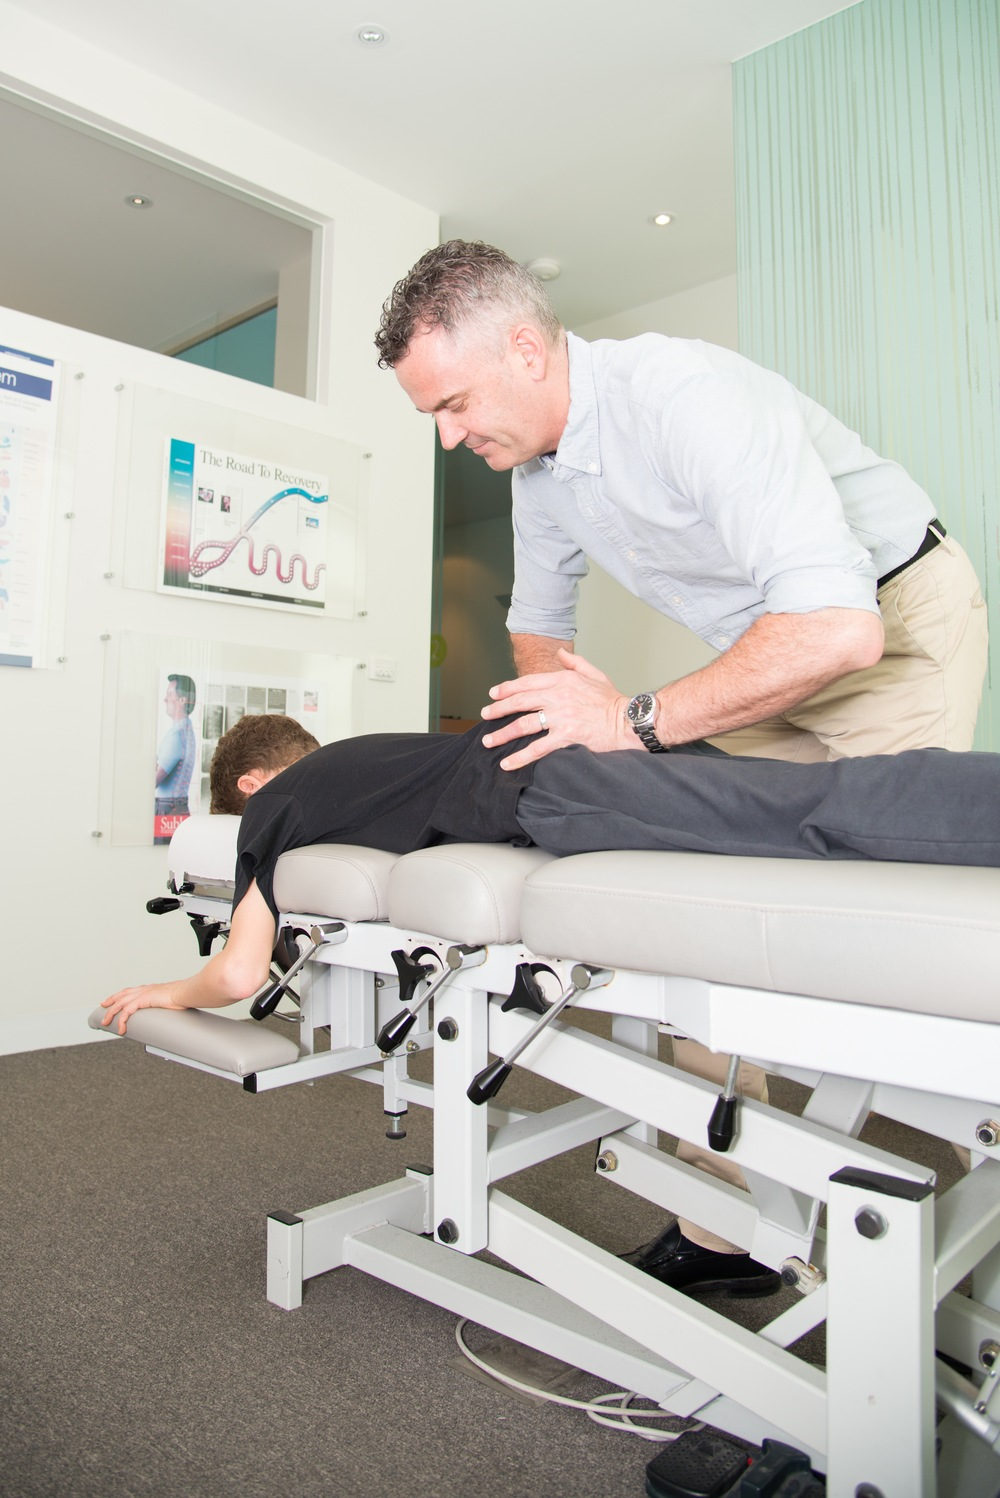 Thompson Chiropractic Technique uses a specialised table to allow a quick, gentle adjustment.